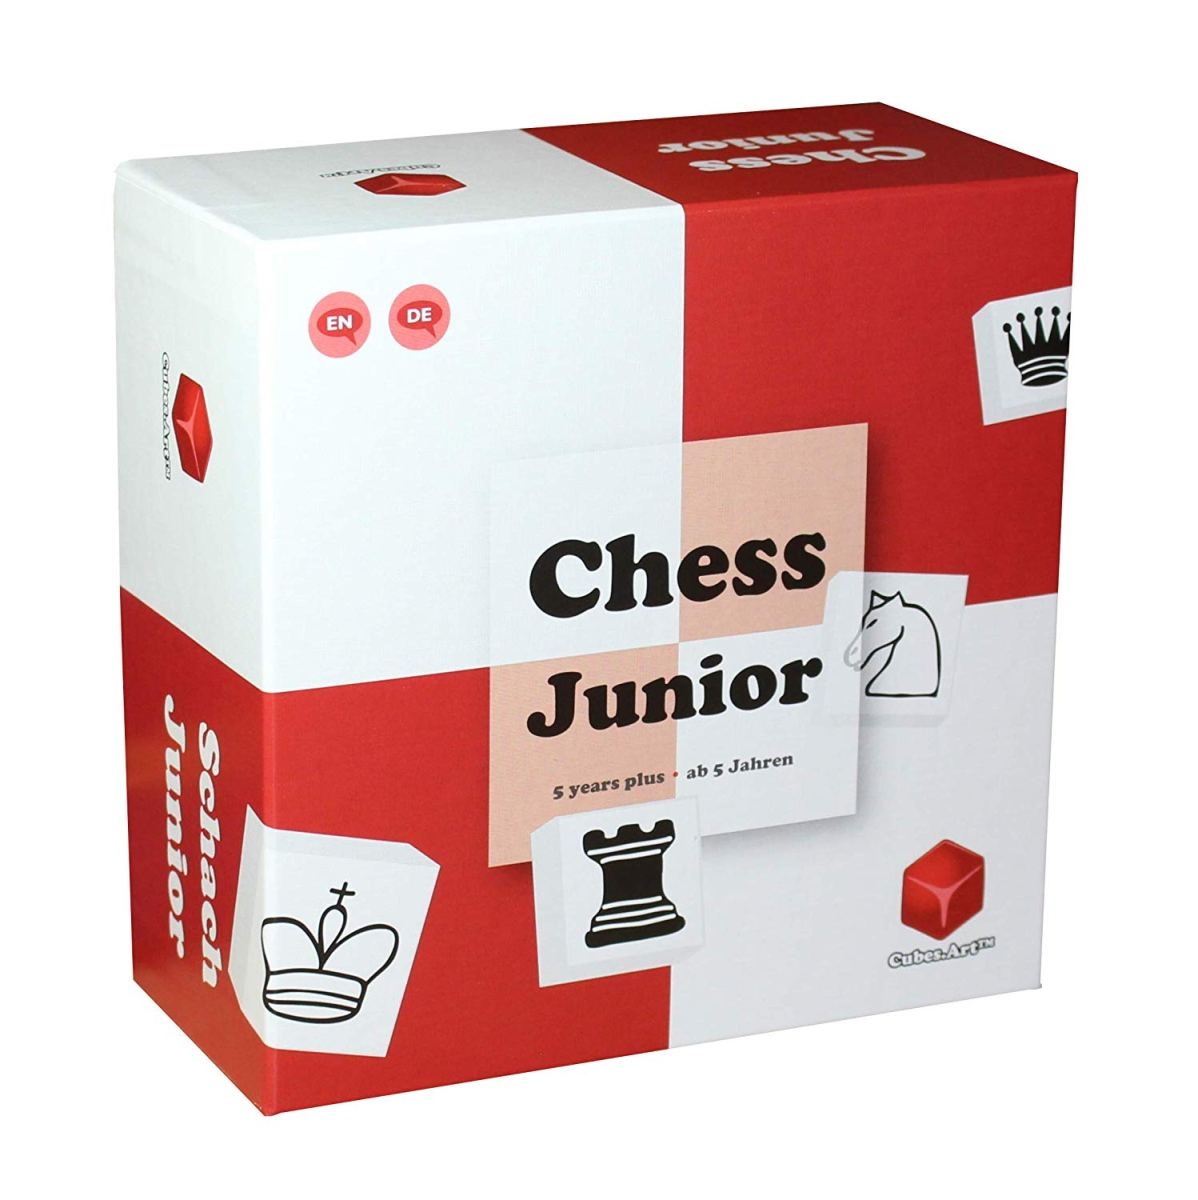 Chess Junior - erobert Kinderherzen!